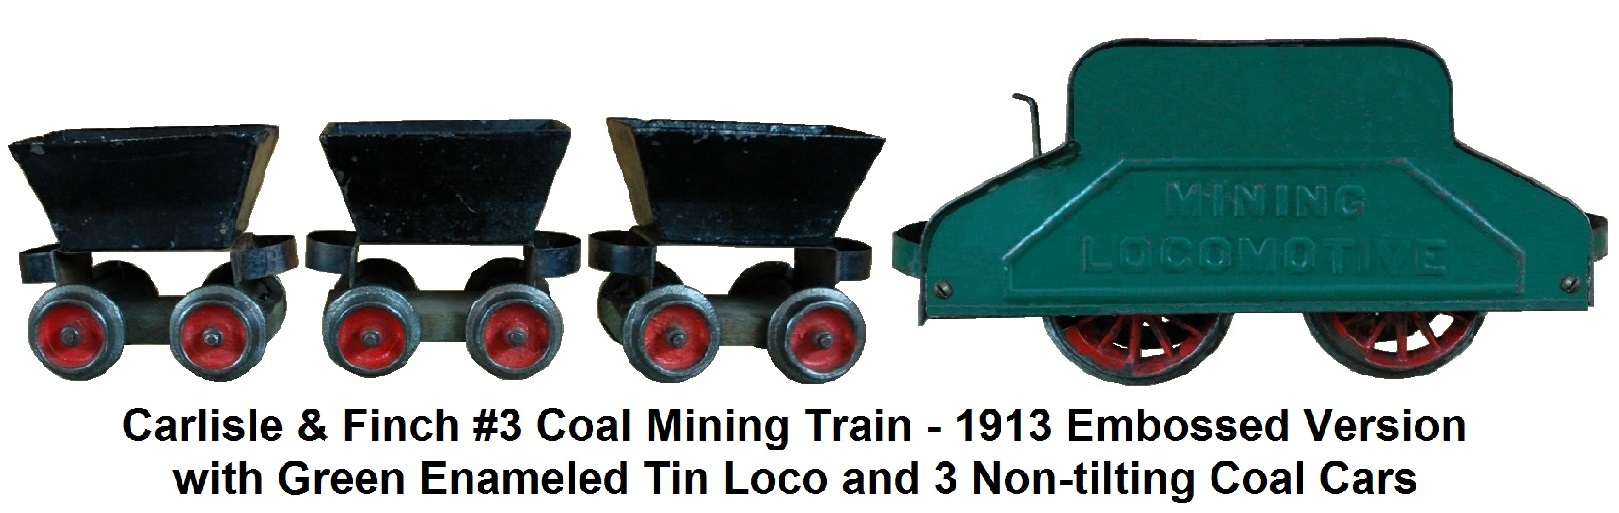 Carlisle & Finch #3 Mining Train in 2 inch - 1913 version with embossed tin locomotive painted enameled green, 3 non-tilting coal cars